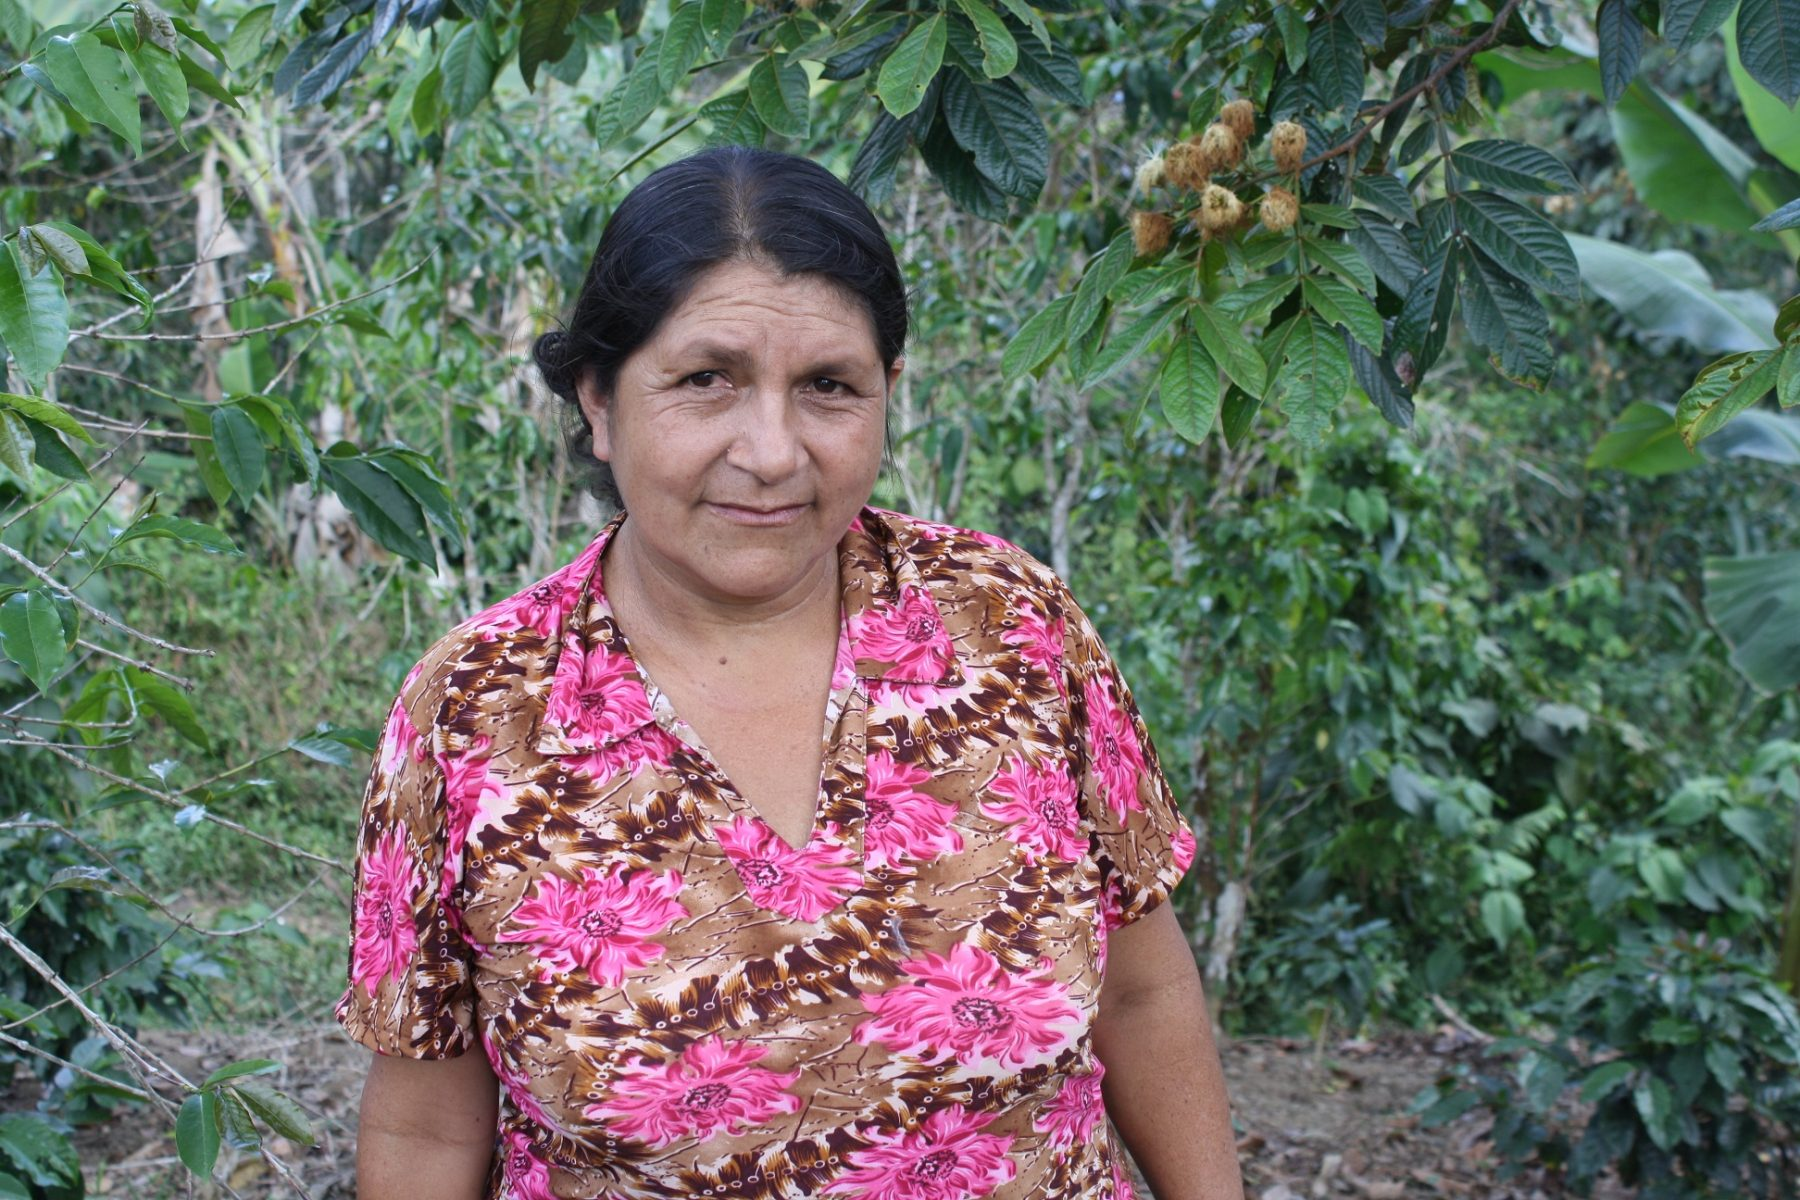 Edinburgh PR photo of worker Maria Eugenia Maldonado Ocana who works for Equal Exchange - the coffee supplier for Surgeons Quarter's Cafe 1505. She is wearing a pink shirt, has her hair tied back and is stood in front coffee plants